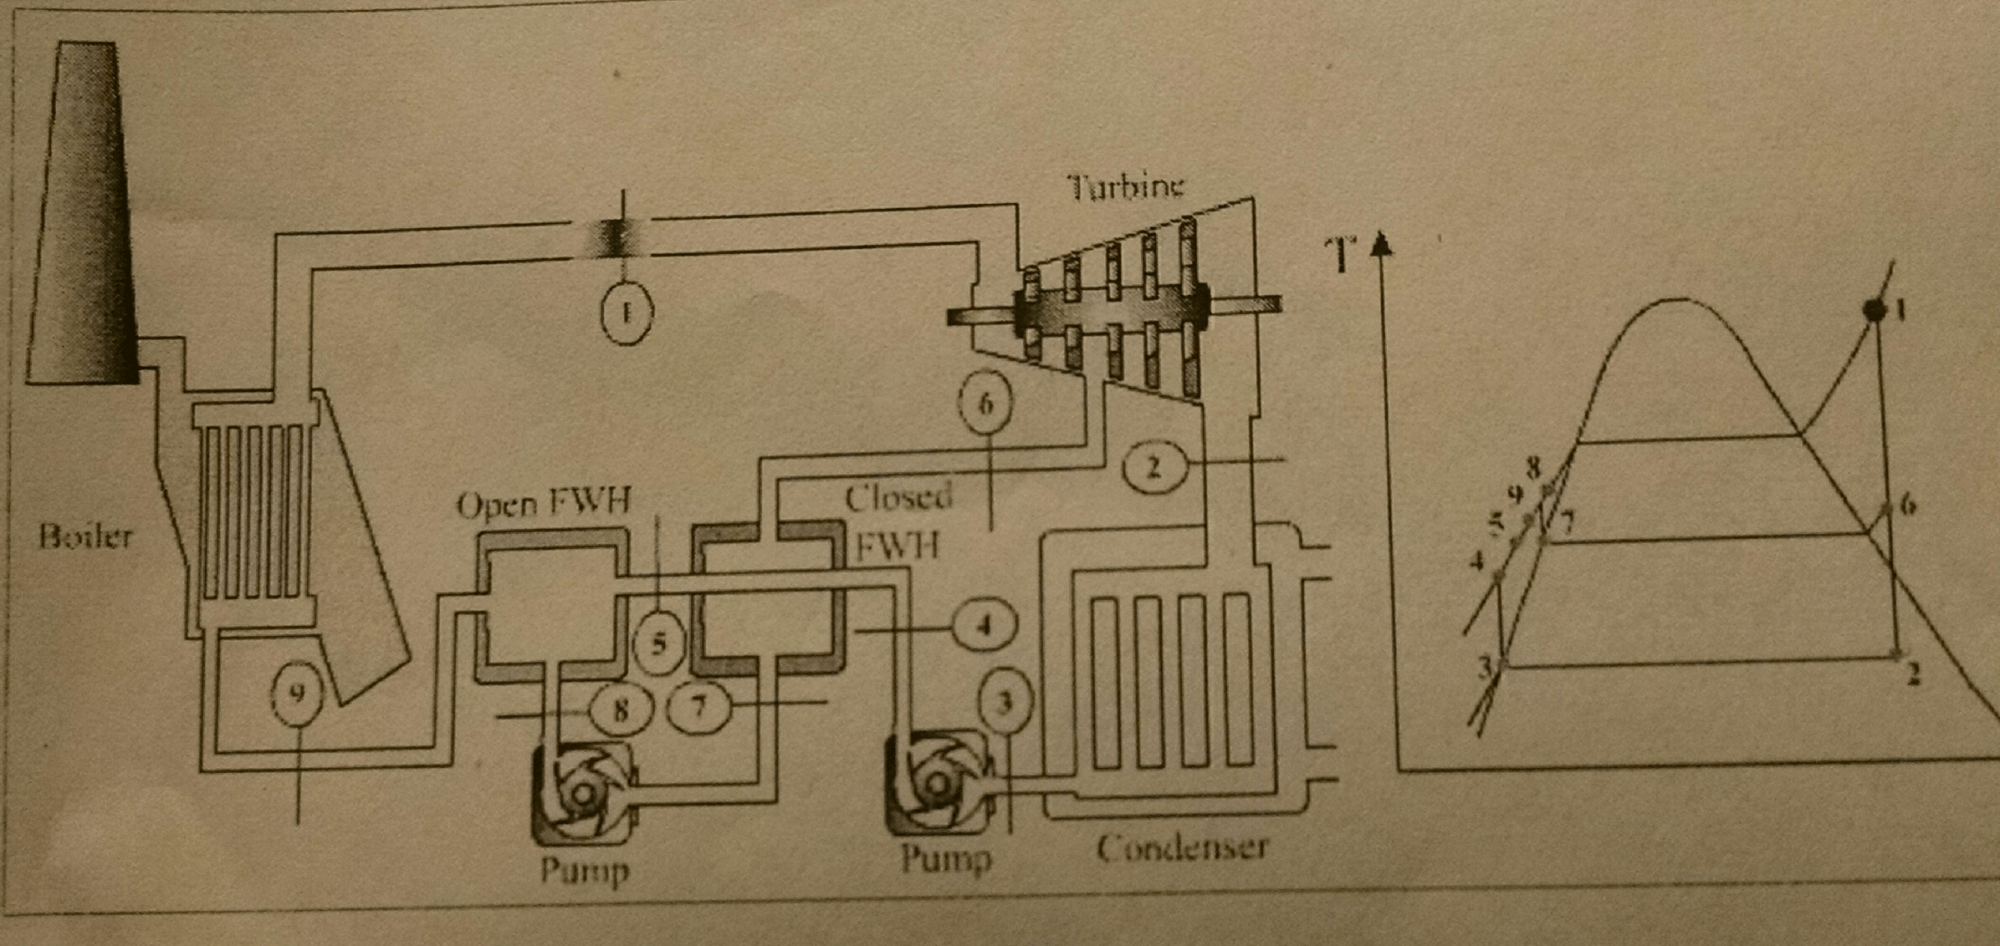 hight resolution of image for the schematic and t s diagrams of a steam power plant cycle and